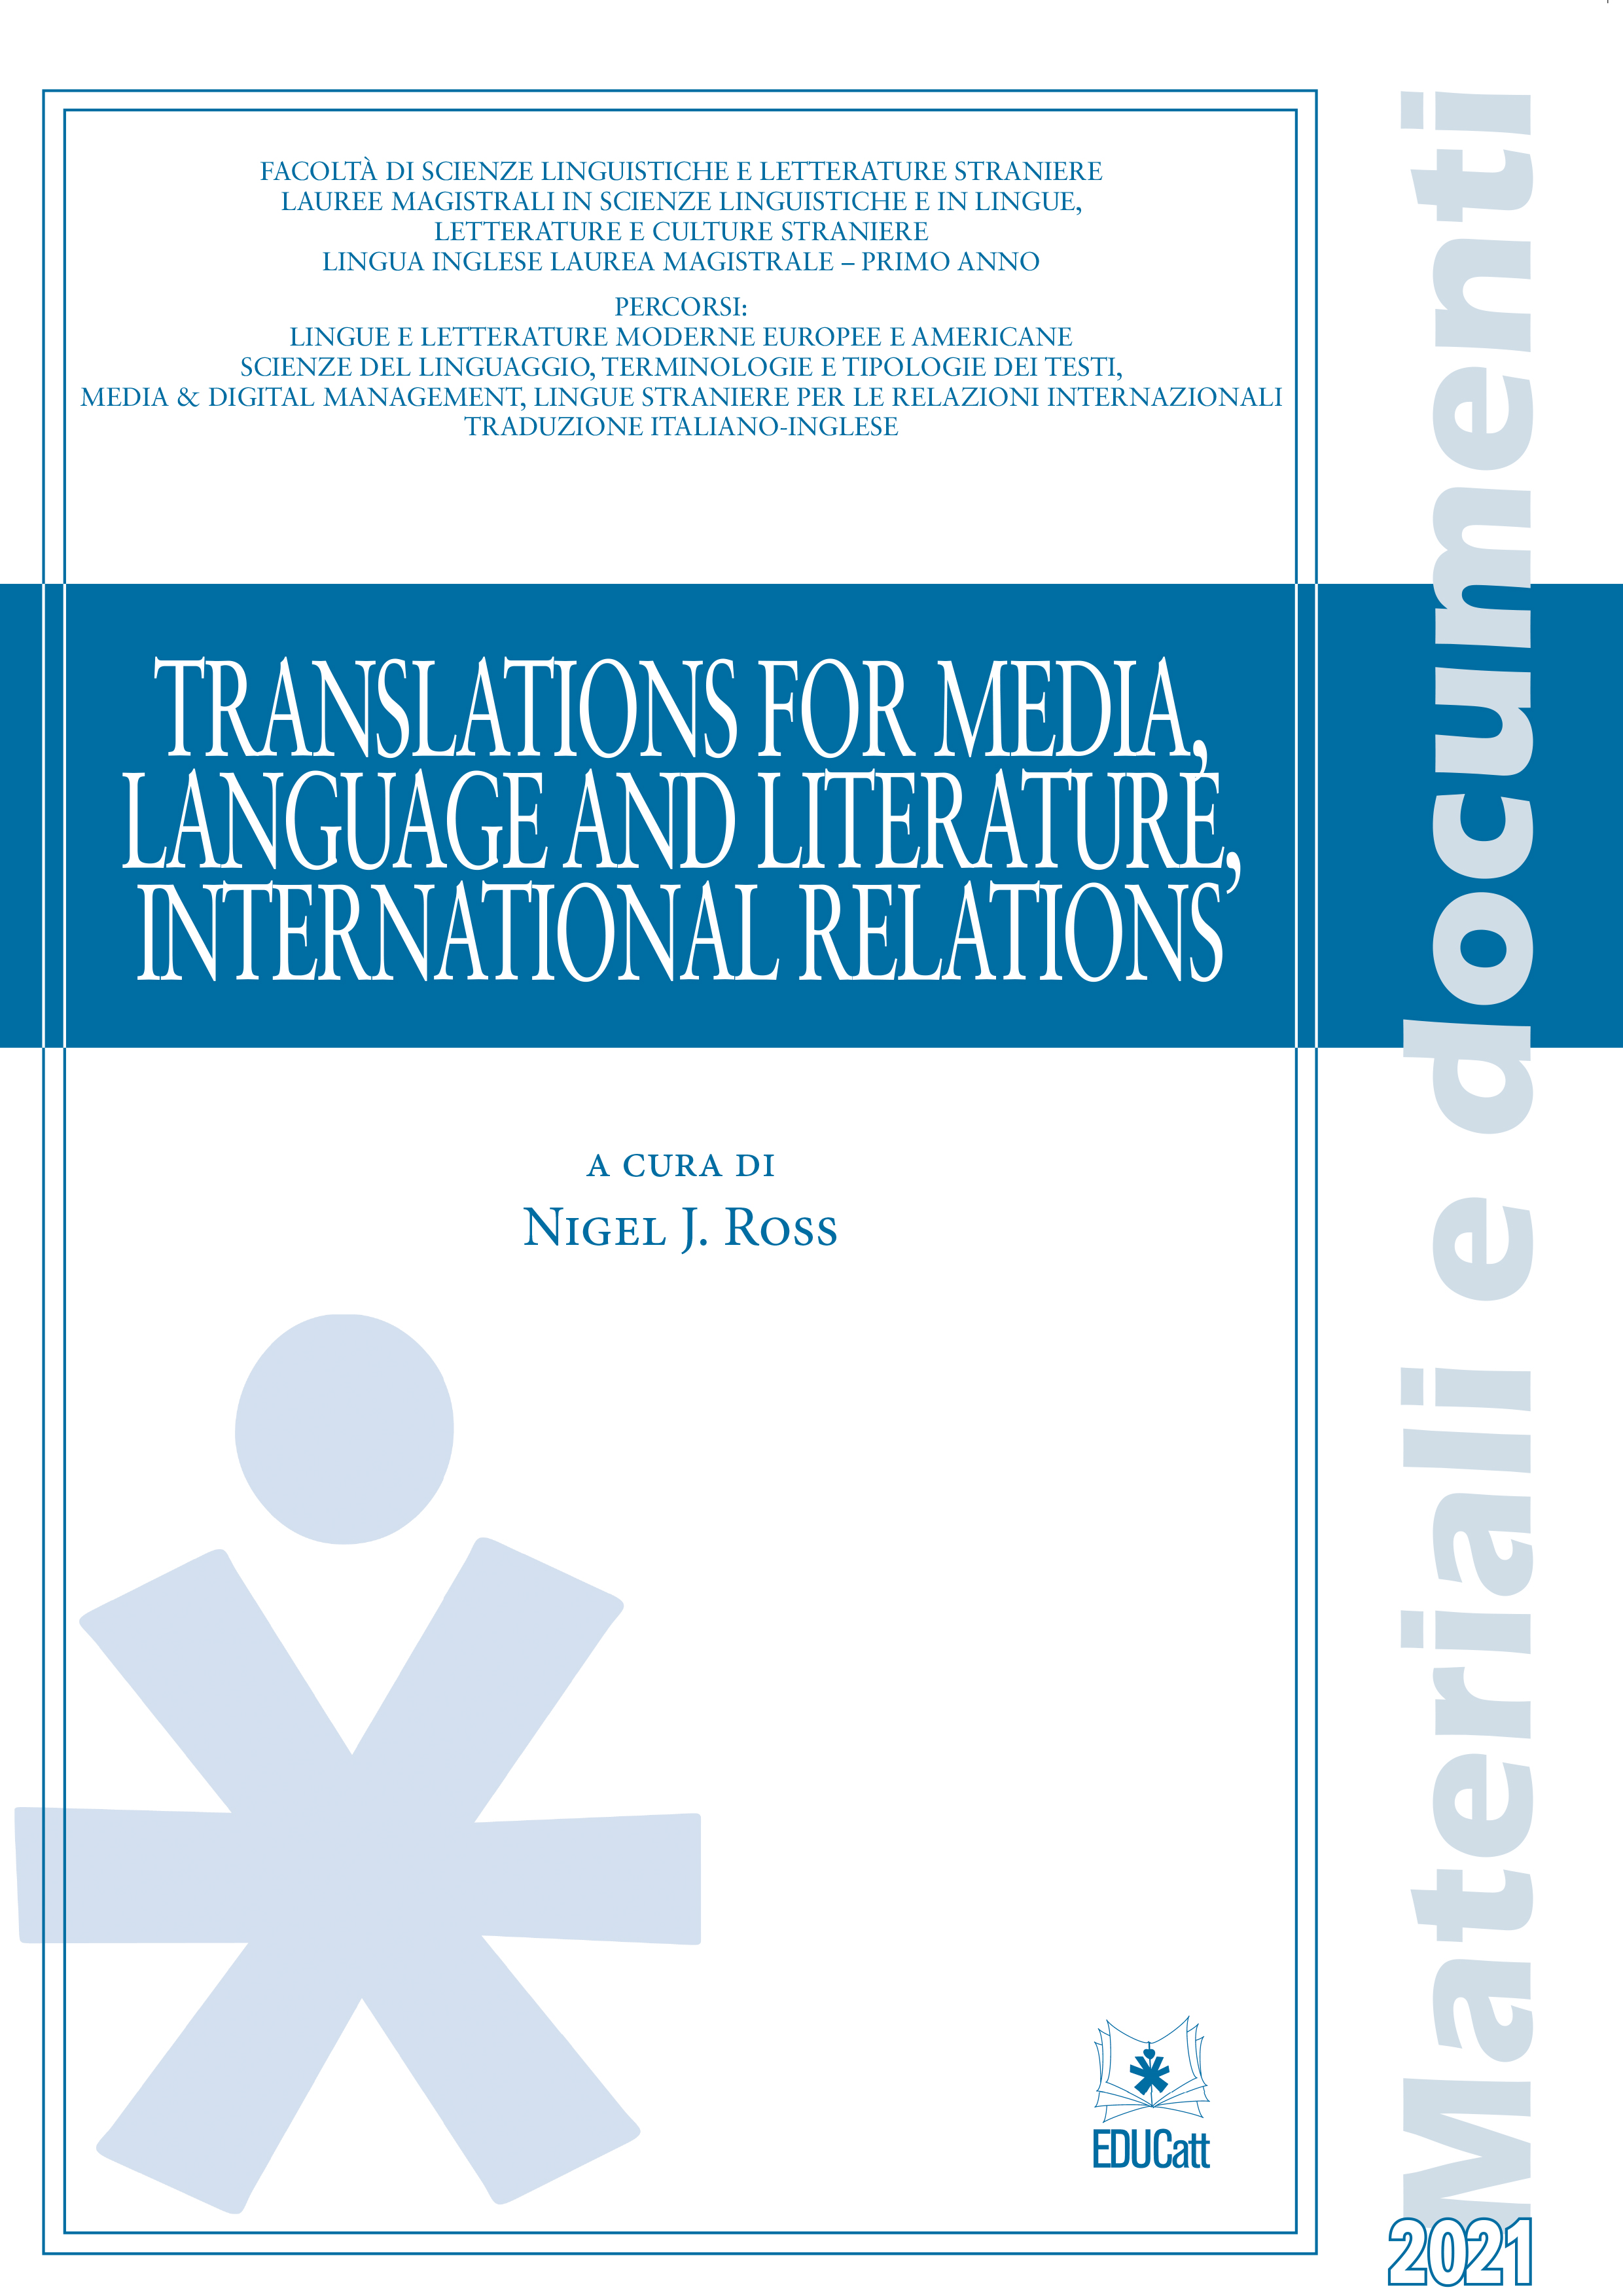 TRANSLATIONS FOR MEDIA LANGUAGE AND LITERATURE, INTERNATIONAL RELATIONS 2021